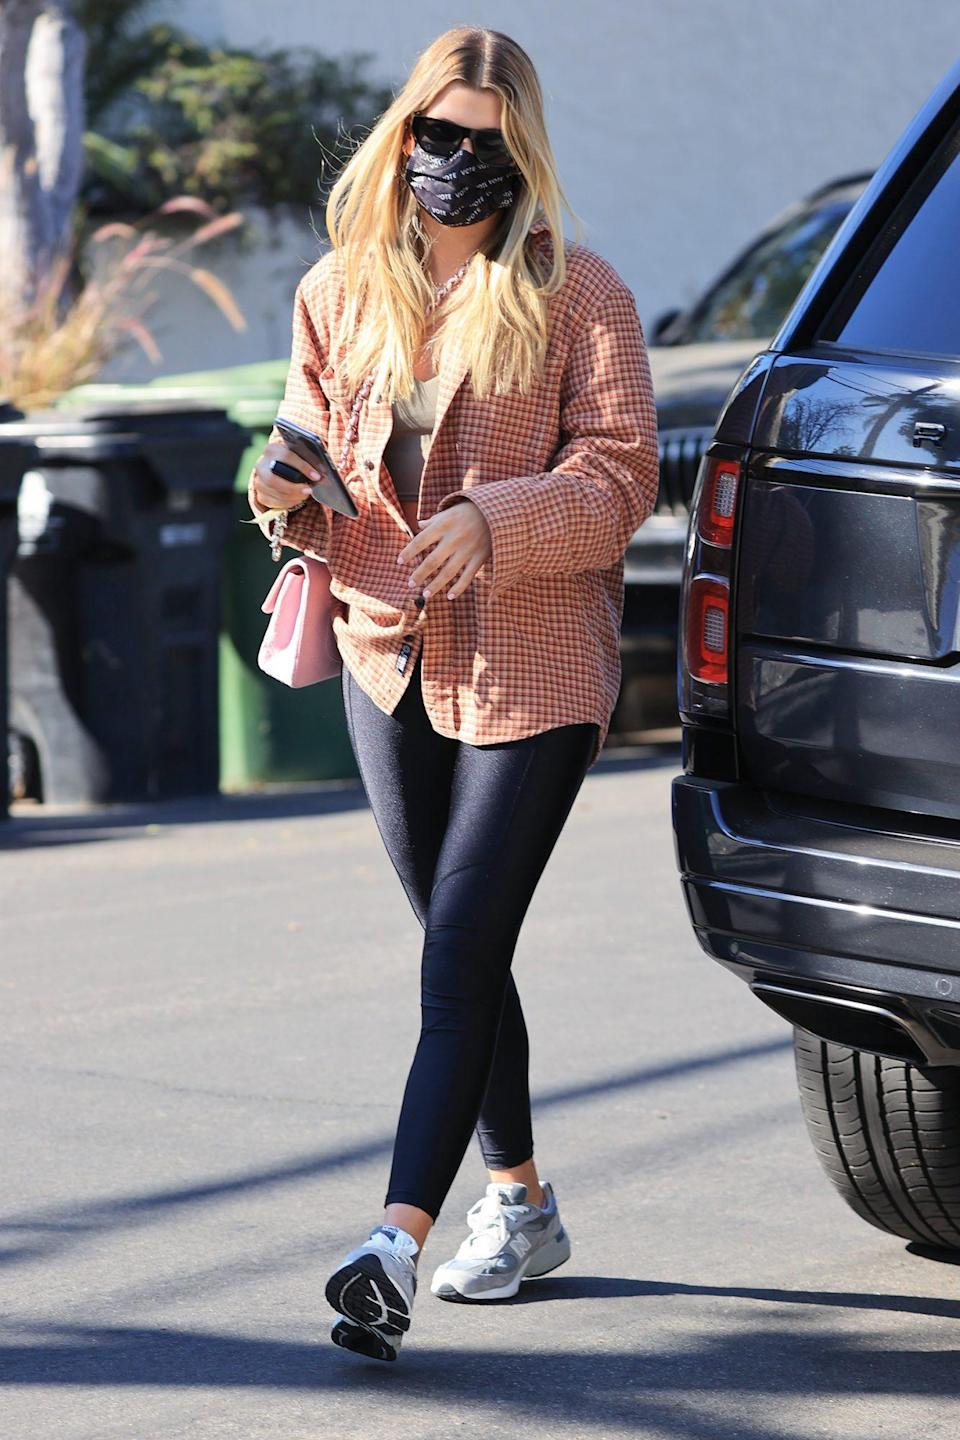 <p>Sofia Richie pairs a plaid coat and leggings, then heads out to a friend's house in L.A. on Wednesday.</p>